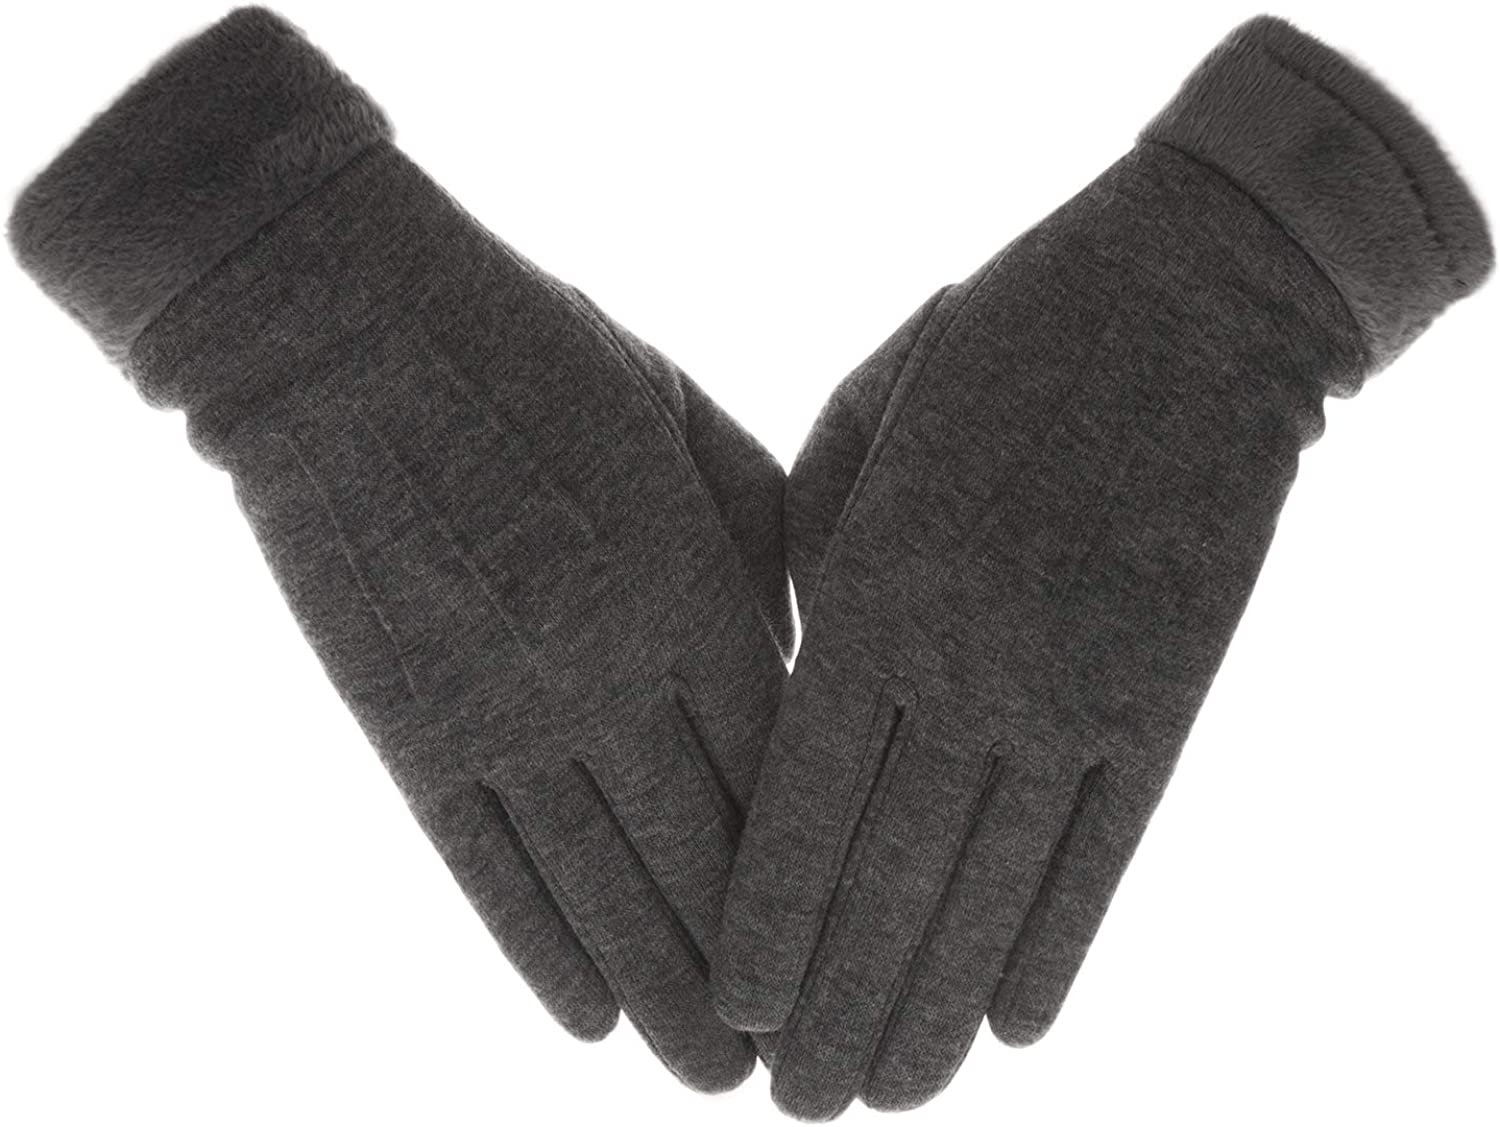 Knolee Gloves Plush Texture...